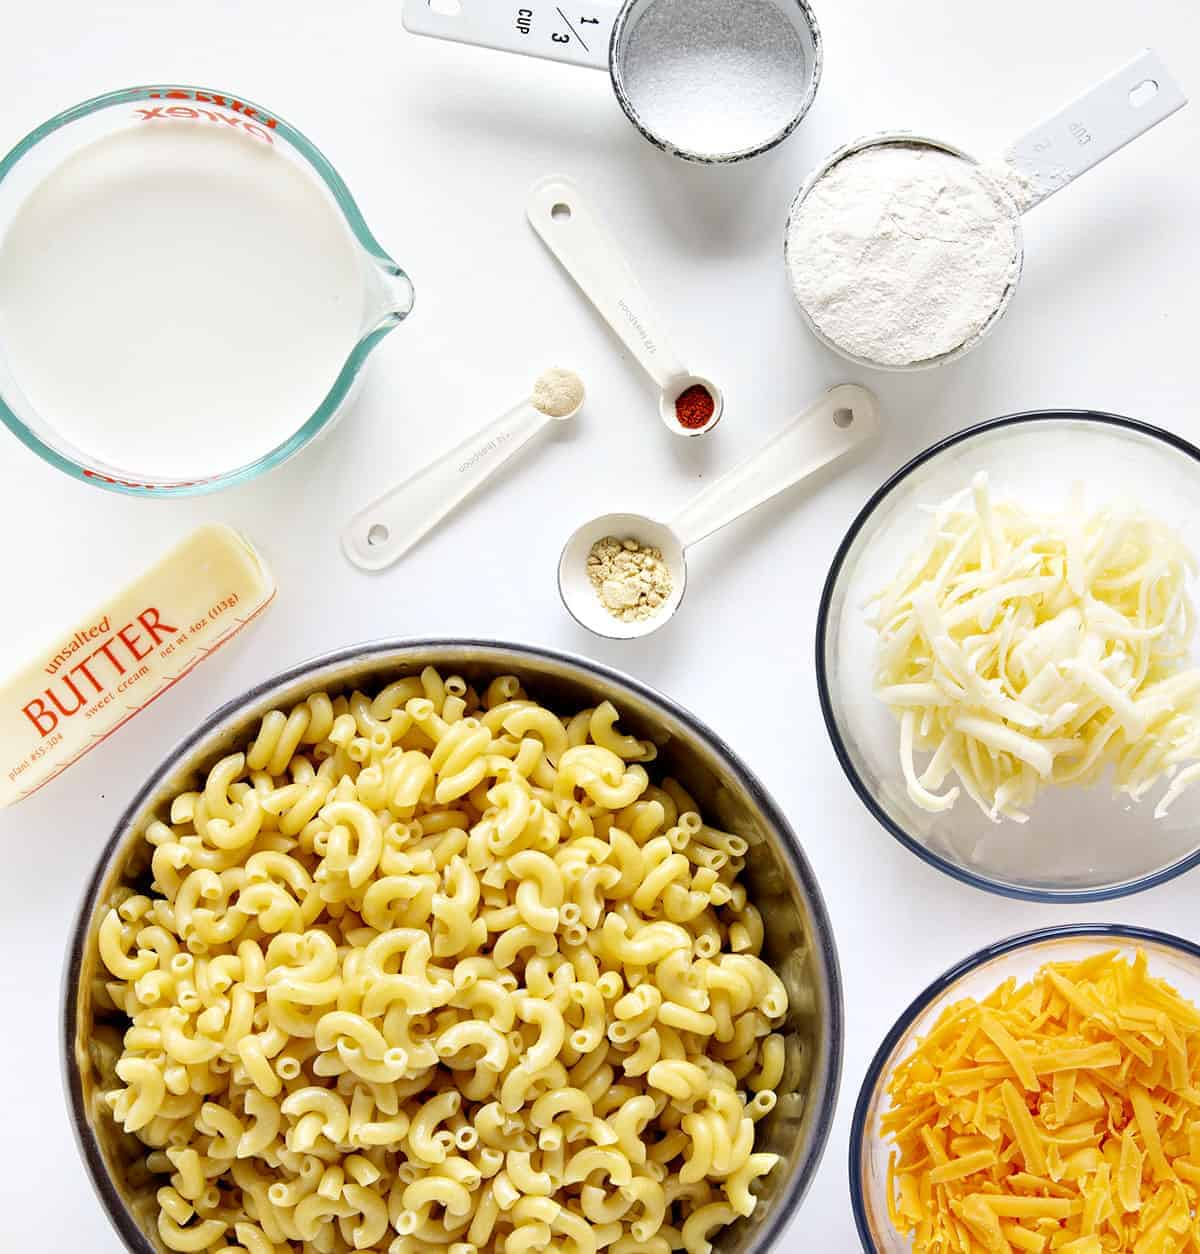 Ingredients for Macaroni and Cheese